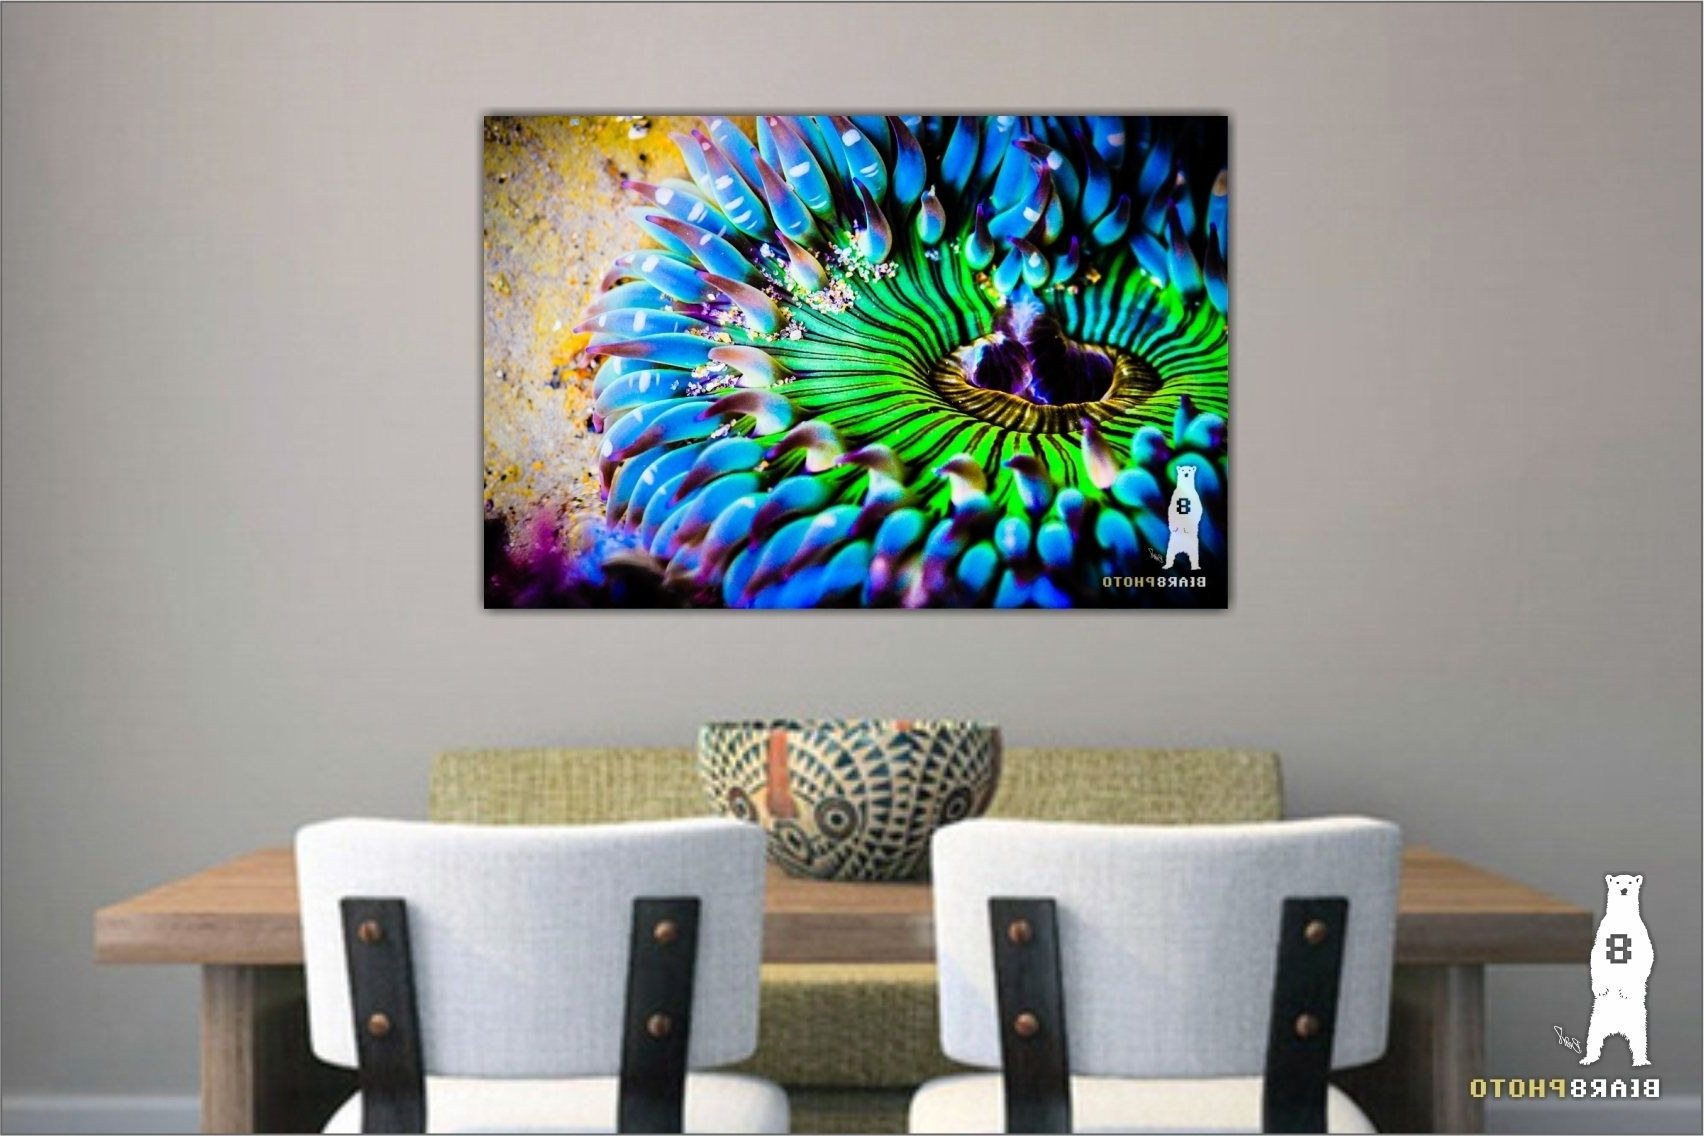 Colorful Wall Art, Bright Wall Art, Sea Life Prints, Bold And Pertaining To Current Colorful Wall Art (View 8 of 15)